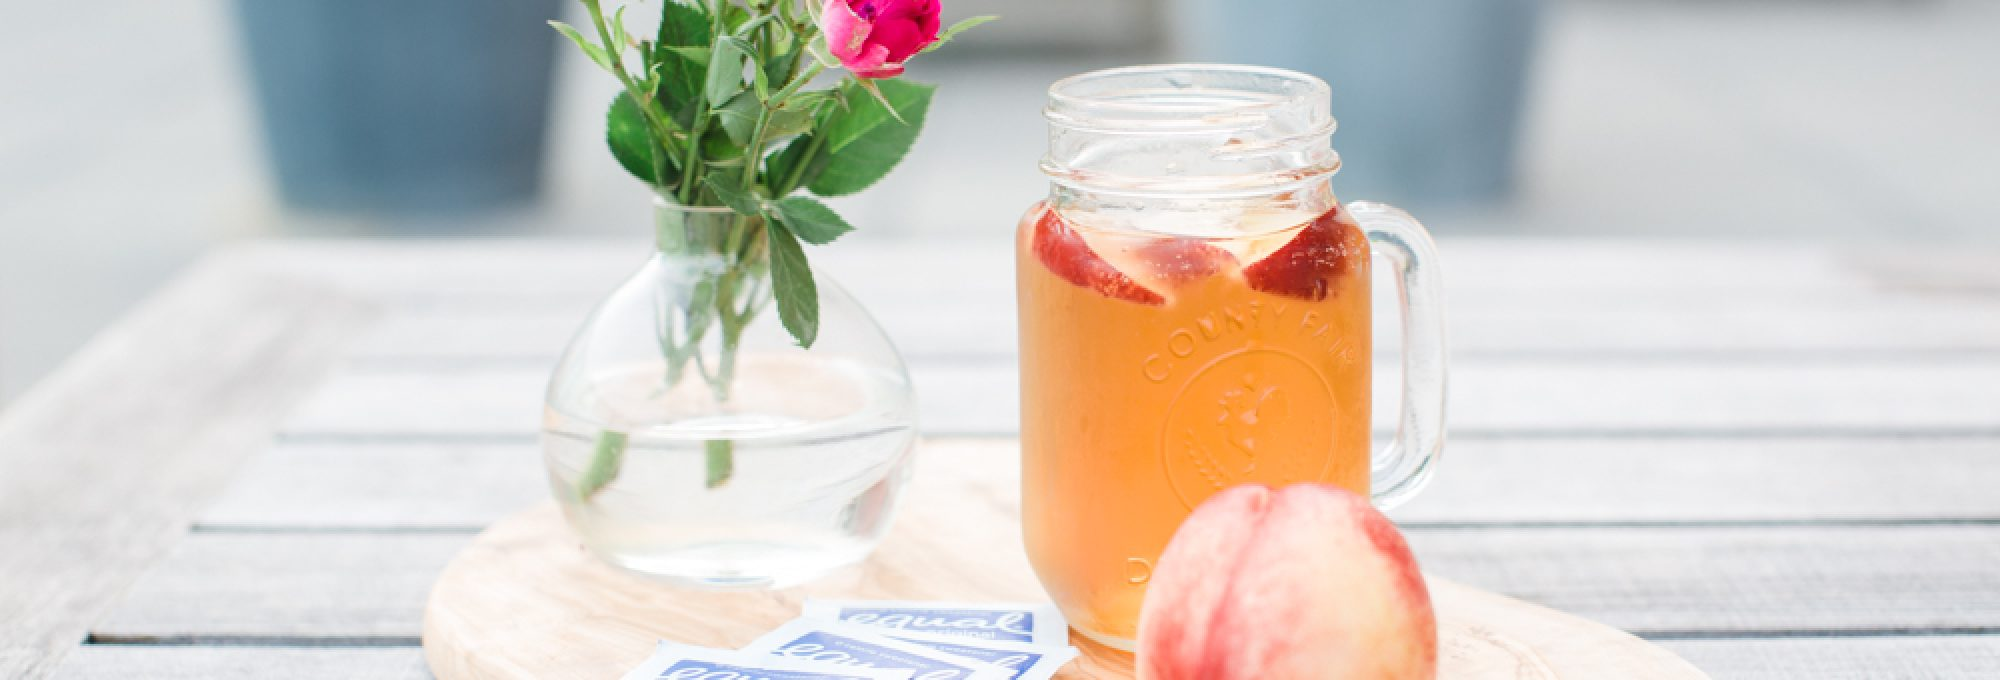 sweet iced tea recipe, equal zero calorie sweetener, peach iced tea, how to make iced tea